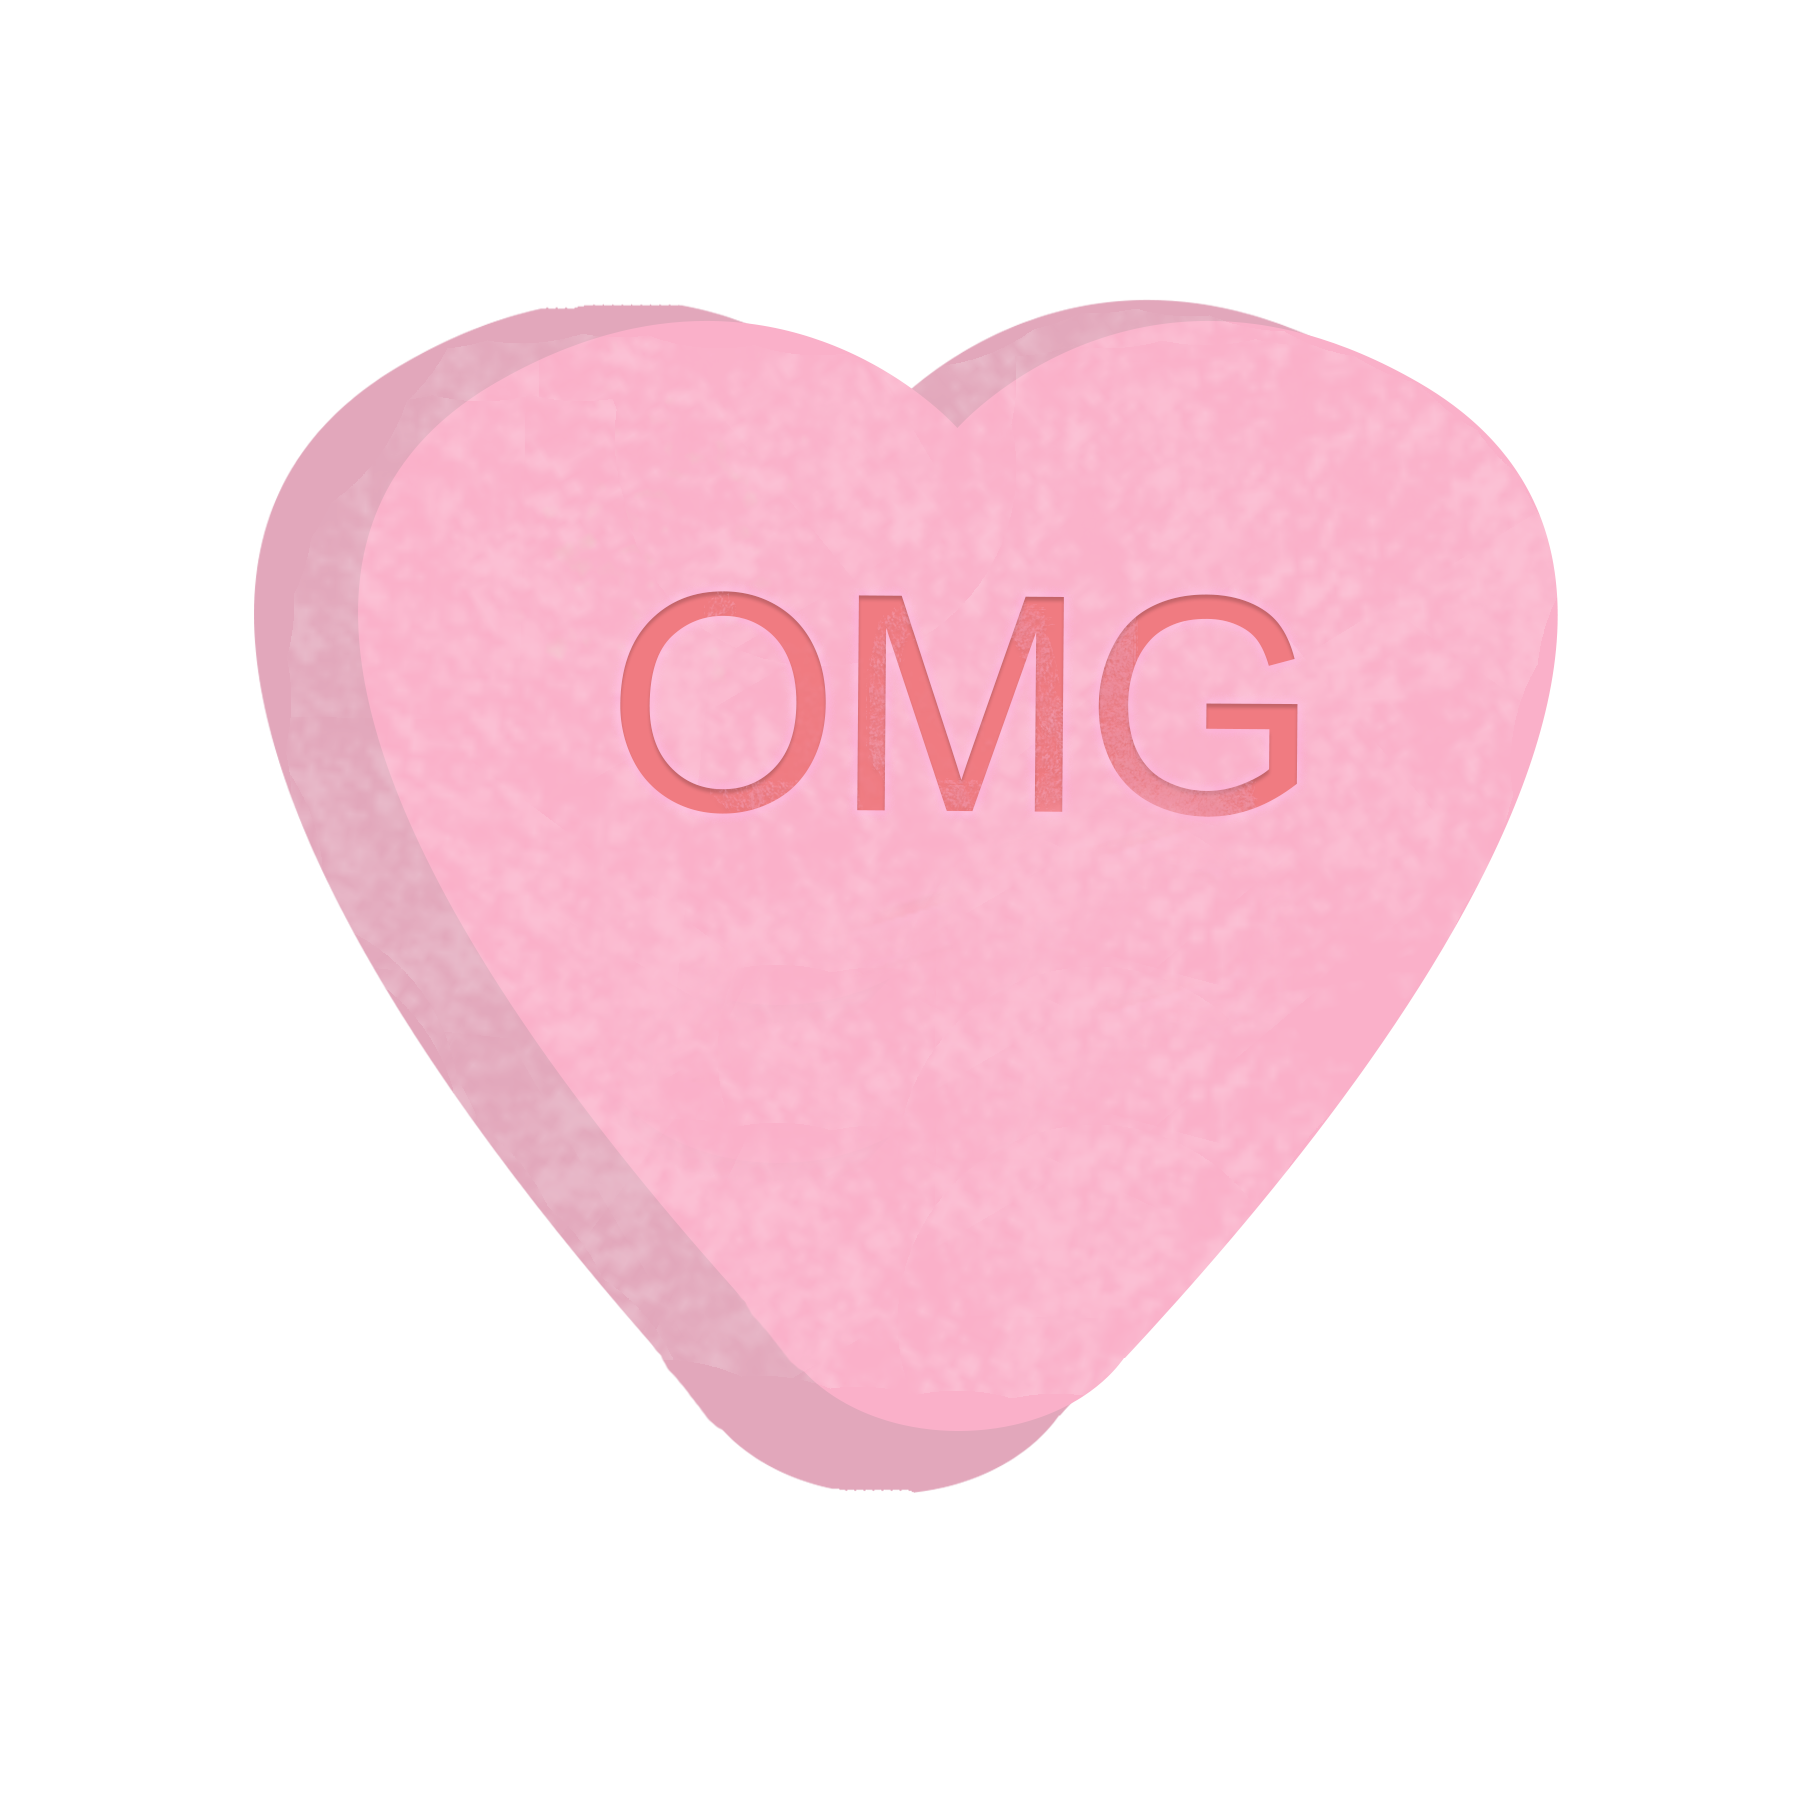 Candy hearts png. Animation in the first